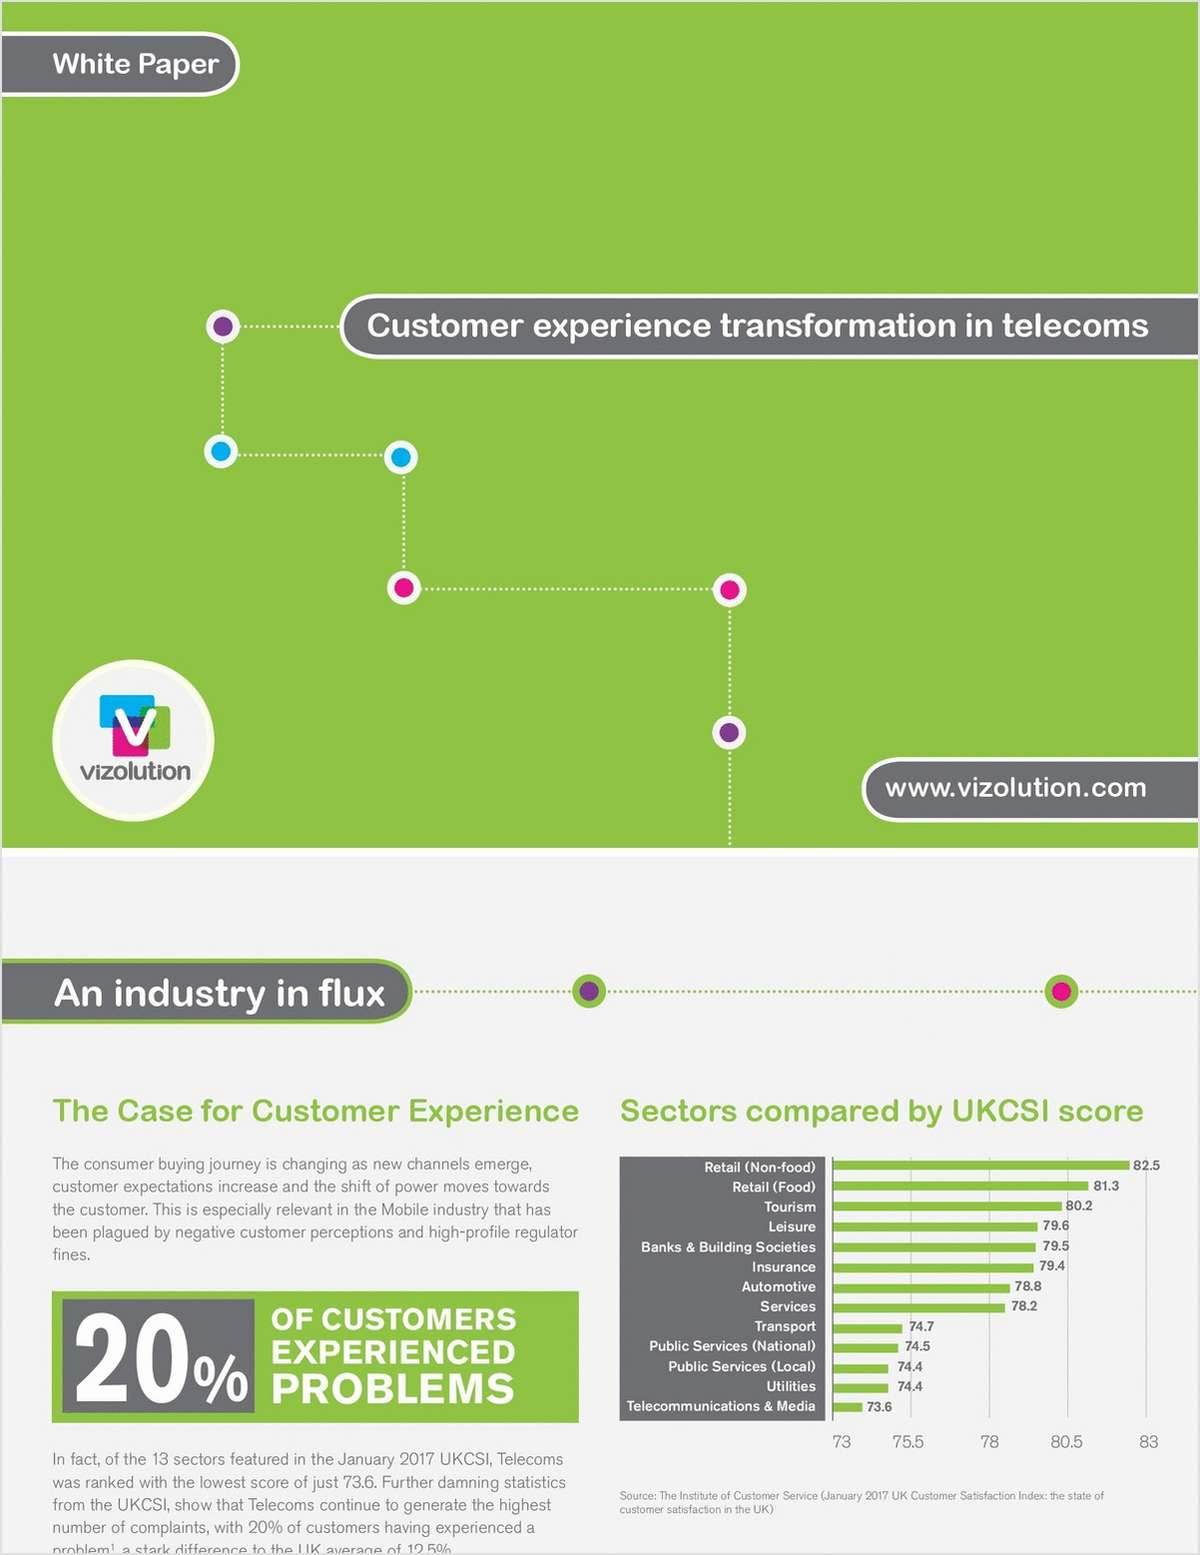 Customer Experience Transformation in Telecoms